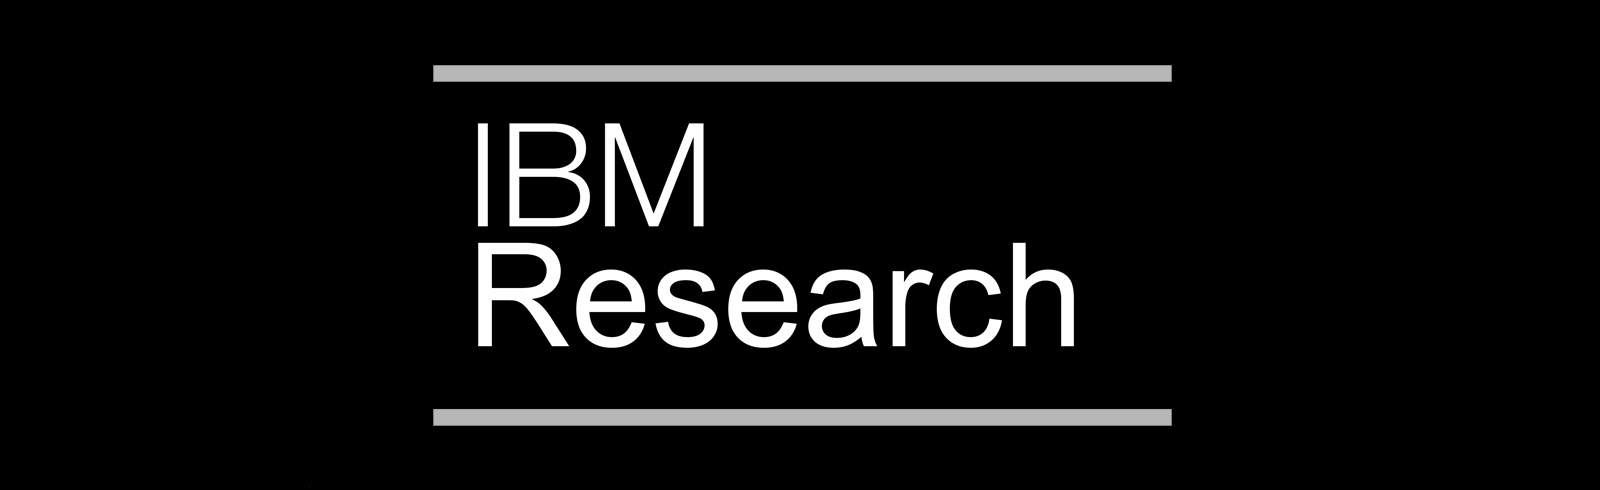 IBM Research discovered three new materials extracted from seawater for EV batteries